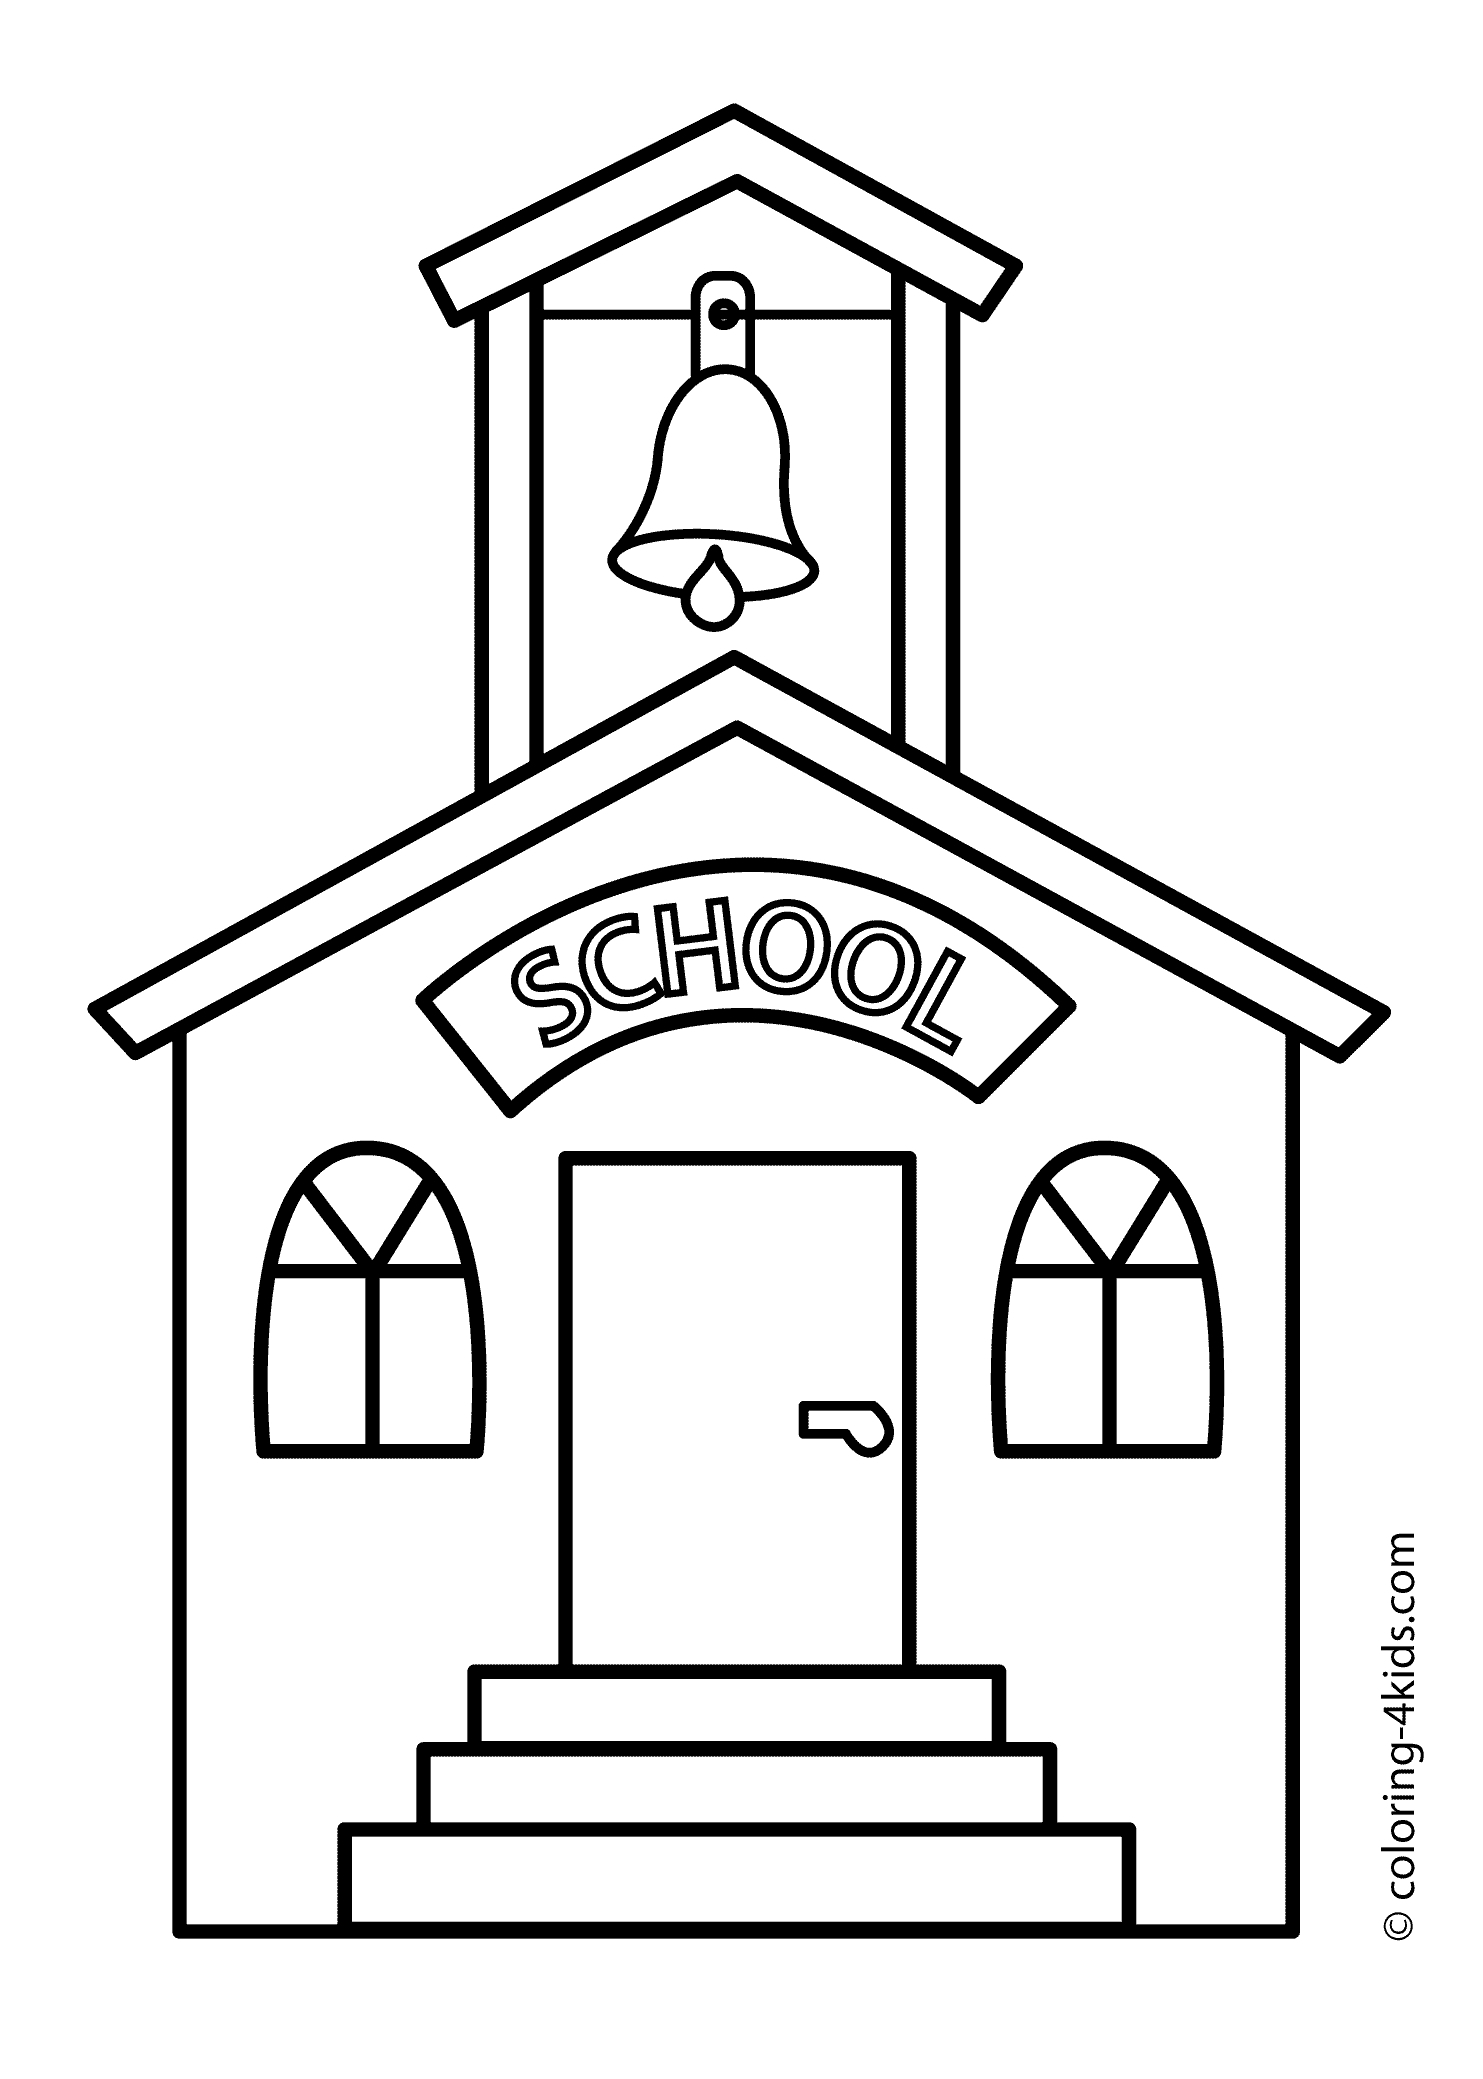 School House Coloring Pages Printable 5q - Free For kids